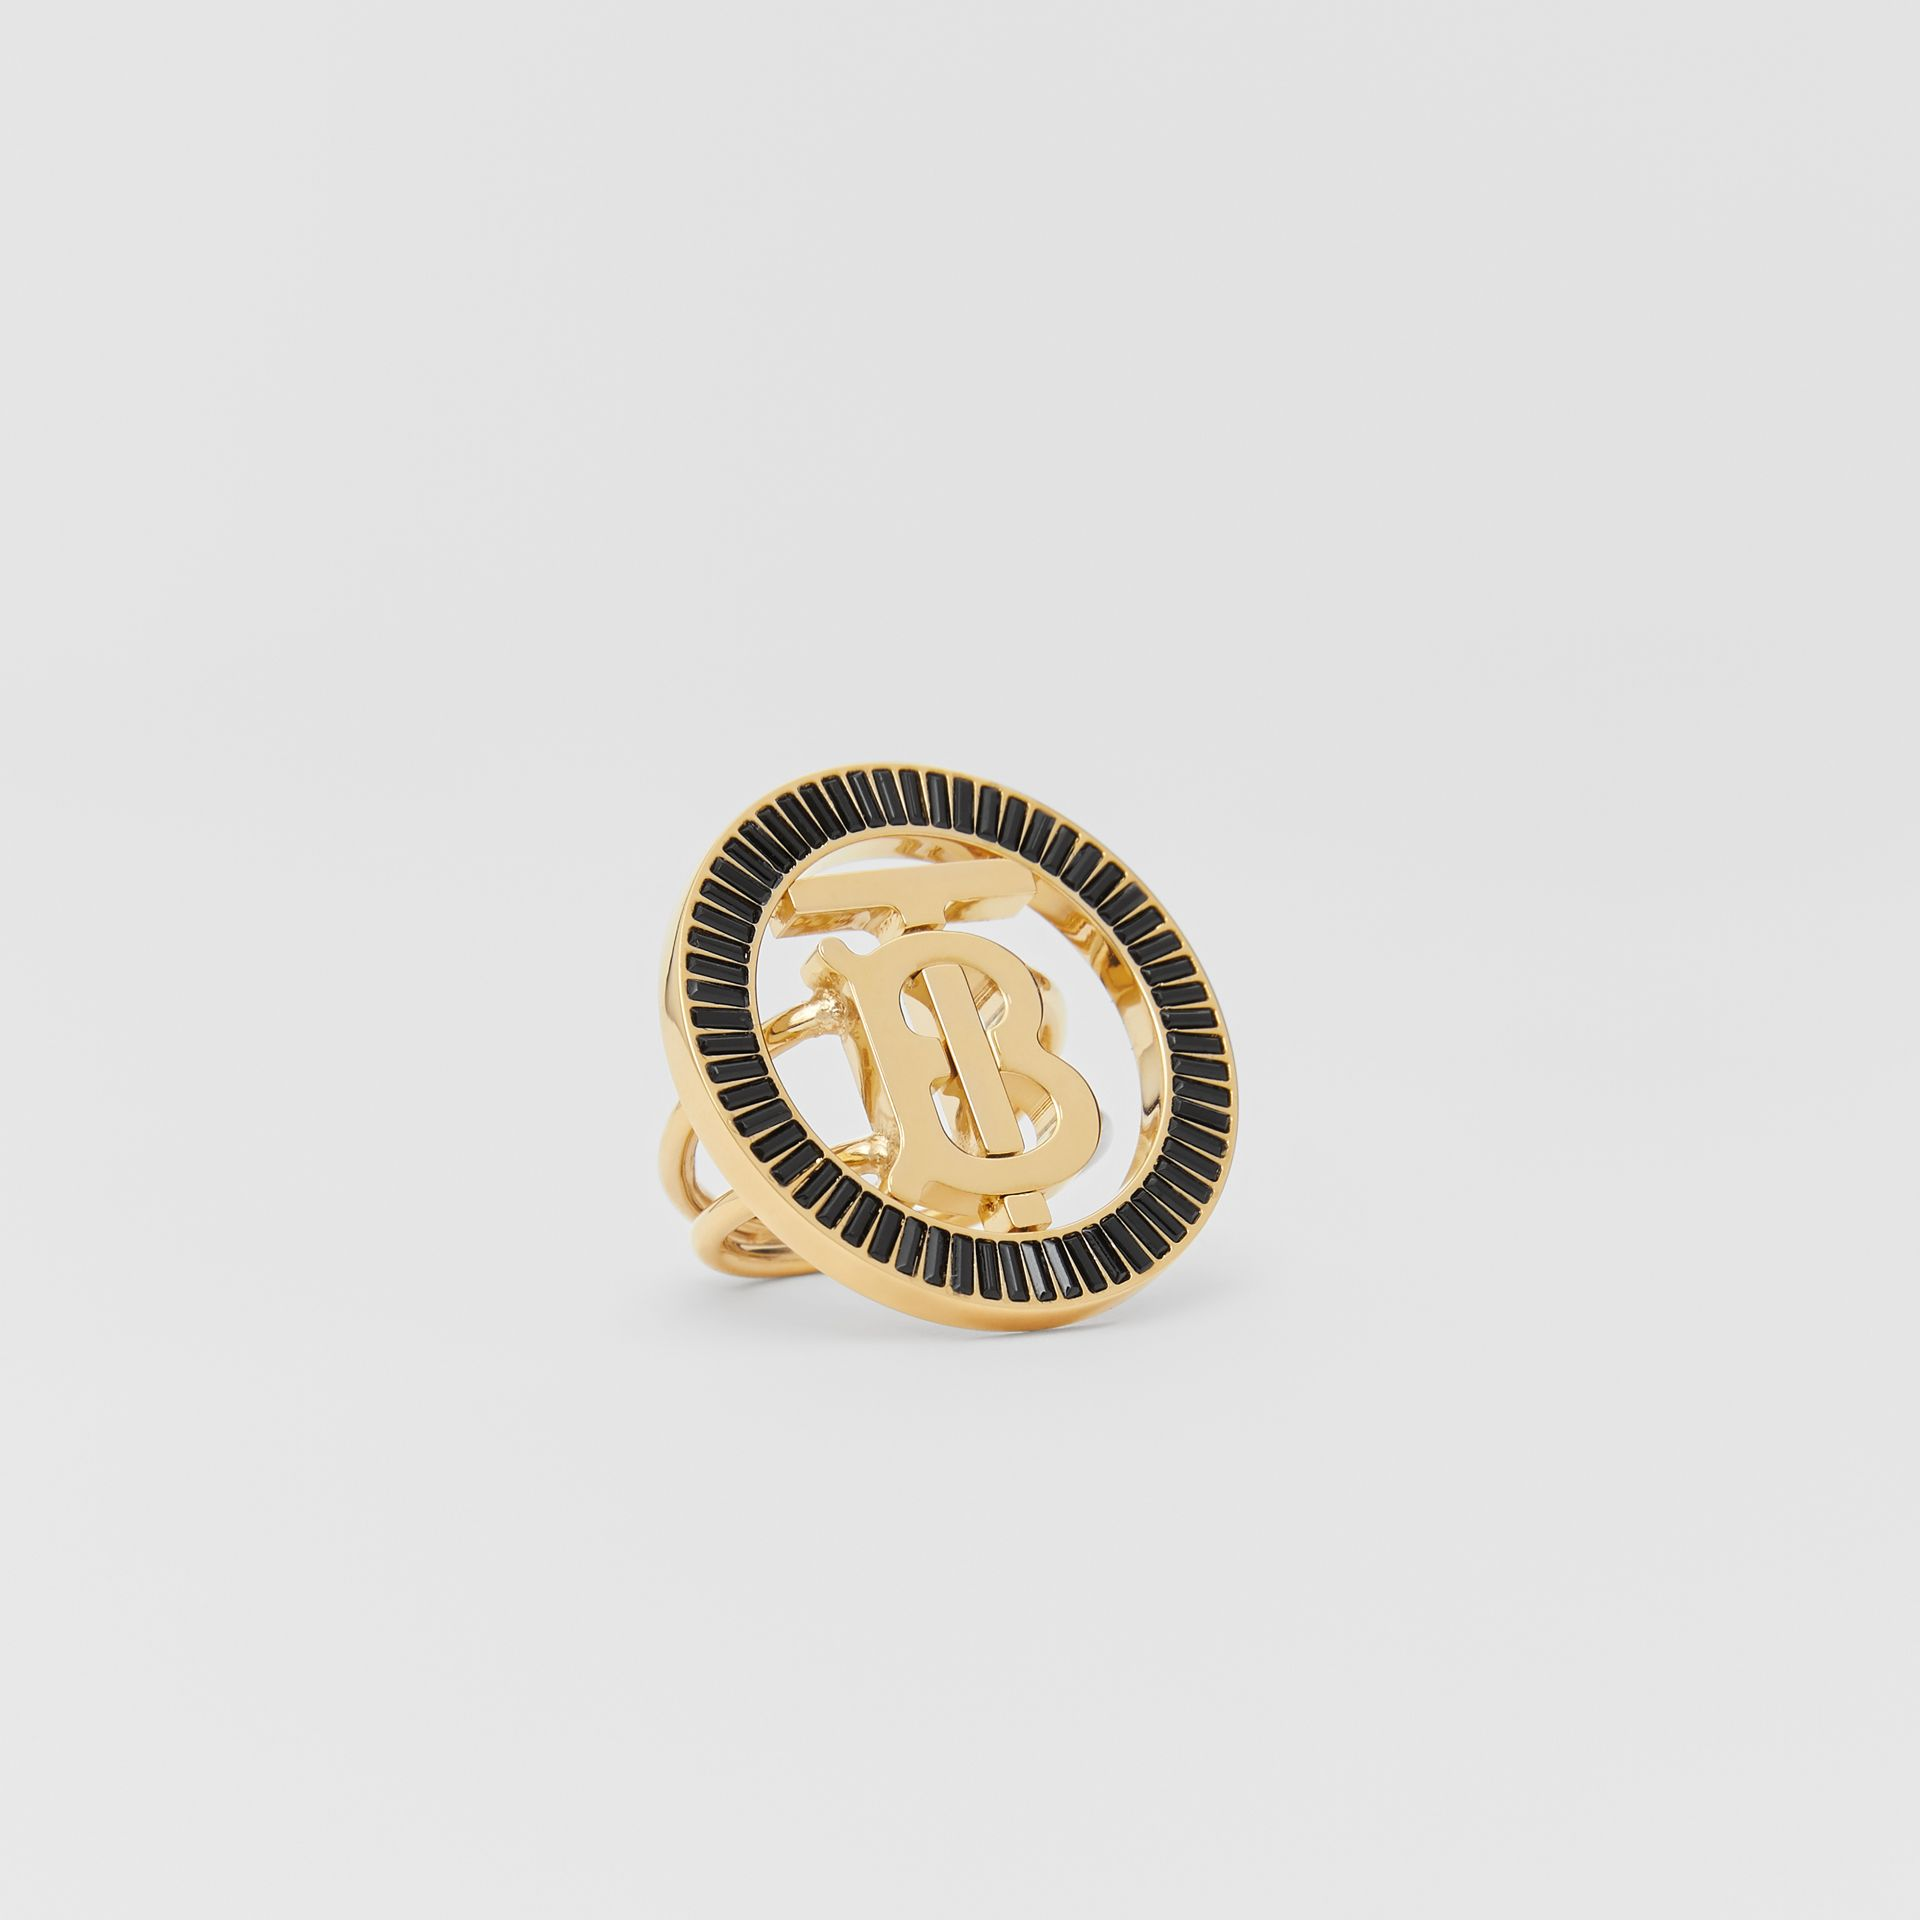 Crystal Detail Gold-plated Monogram Motif Ring in Jet Black - Women | Burberry - gallery image 2